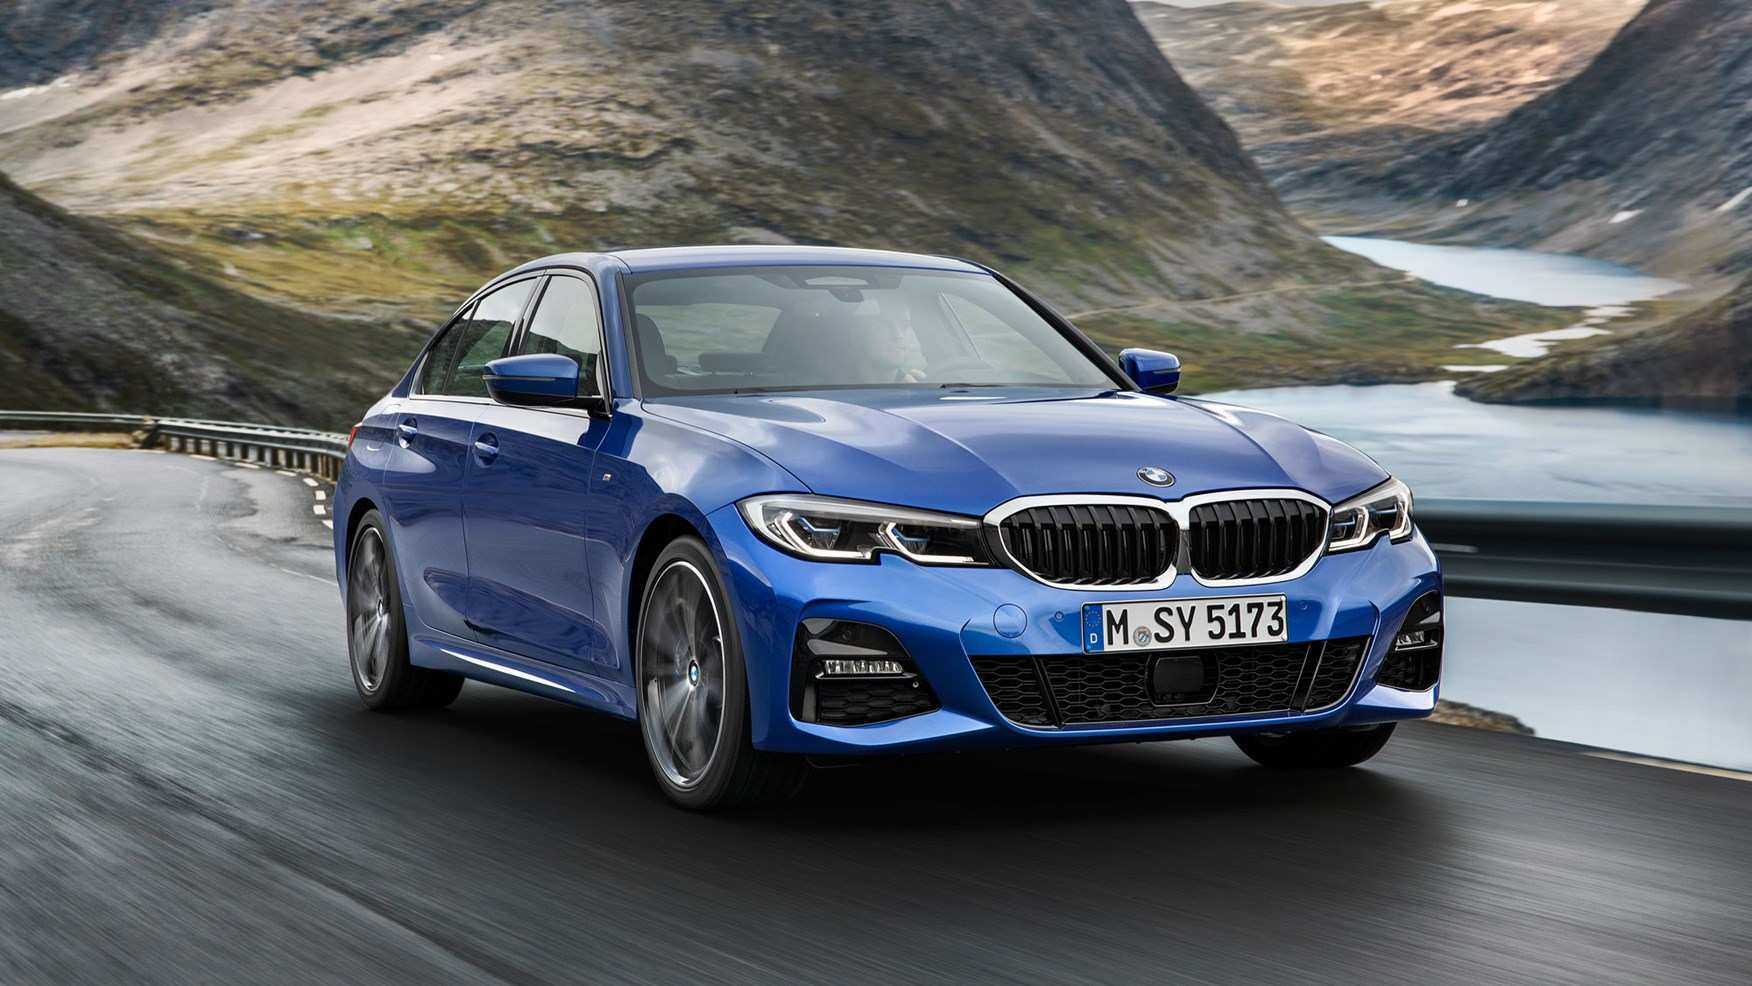 95 The Best Bmw New 3 Series 2020 Release Date And Concept